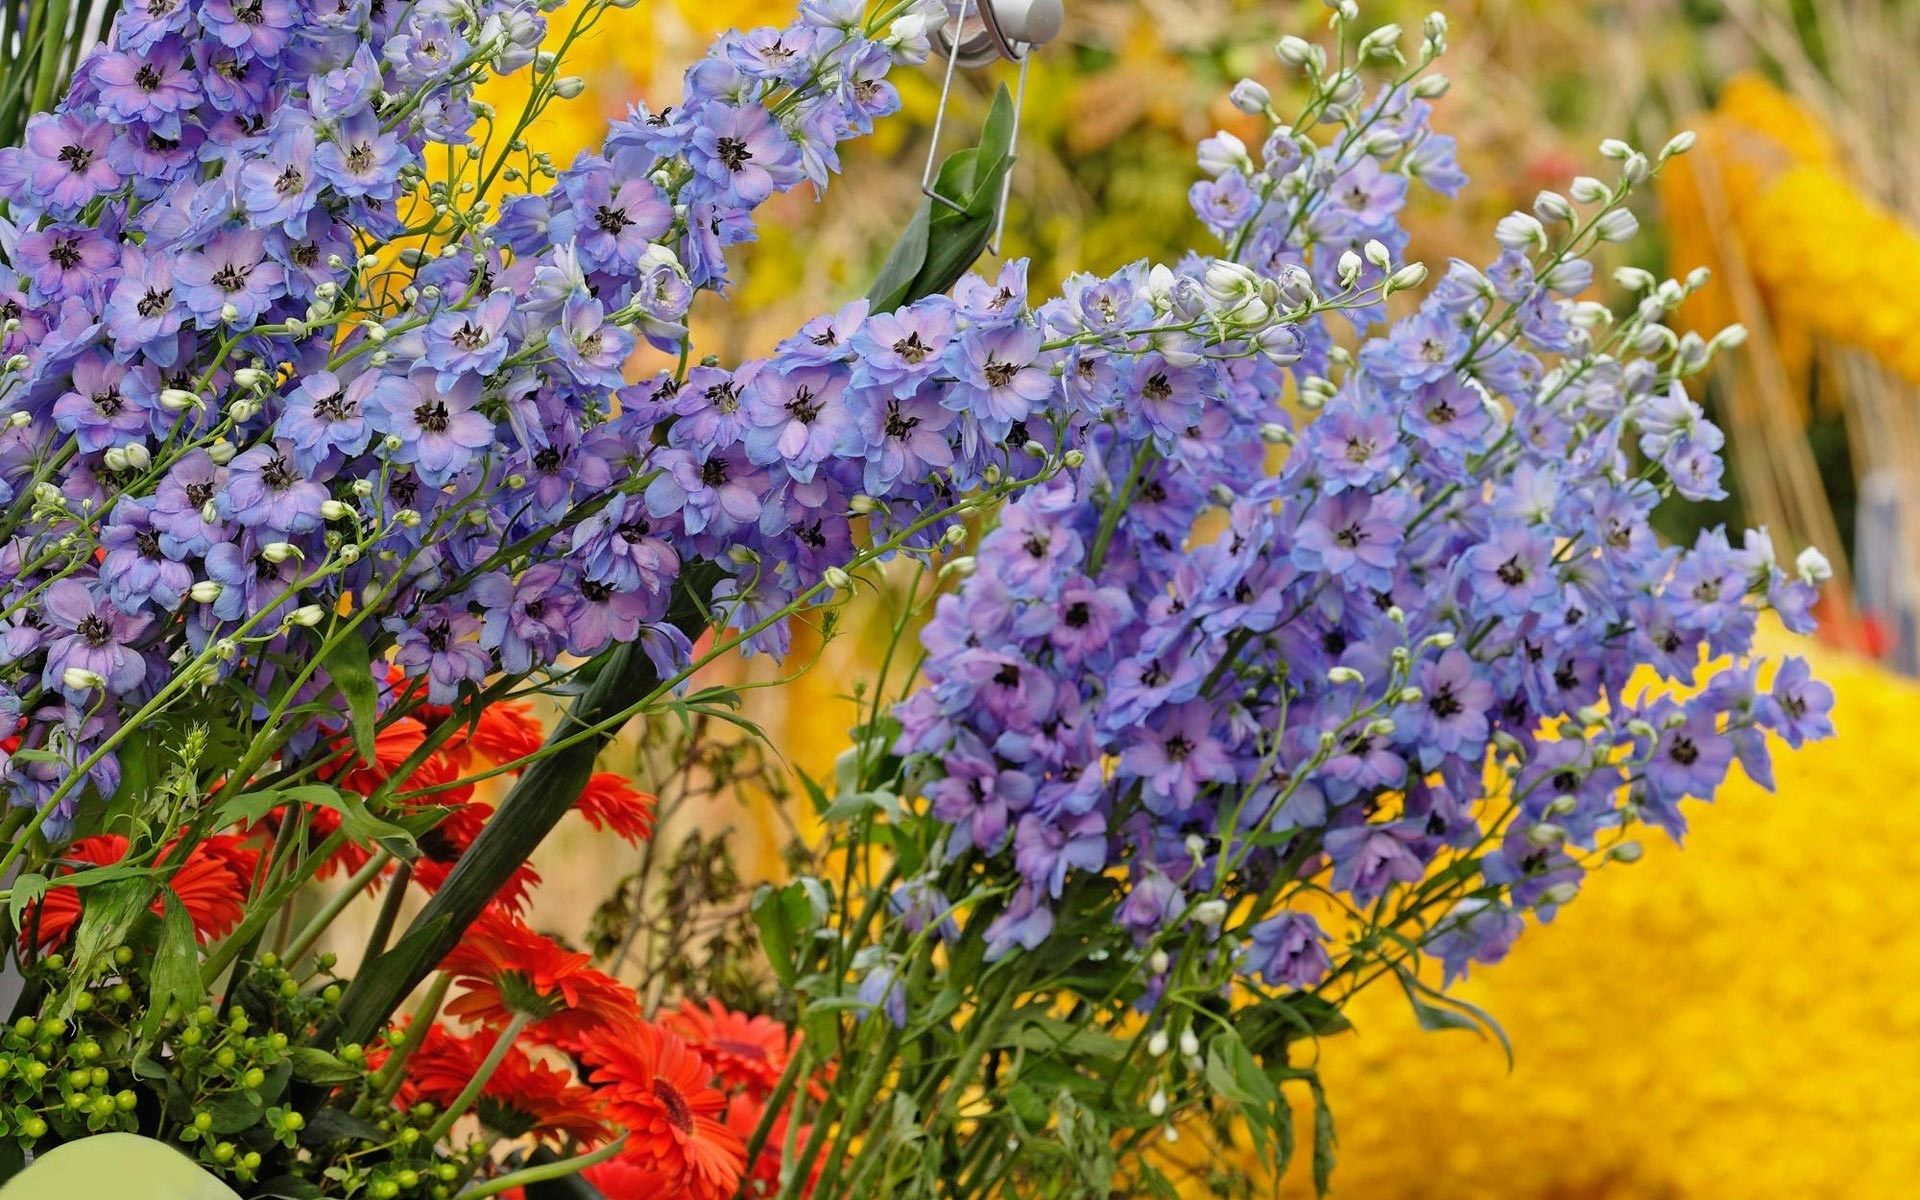 Quality Cool colorful flowers image, 578 kB - Woodward WilKinson